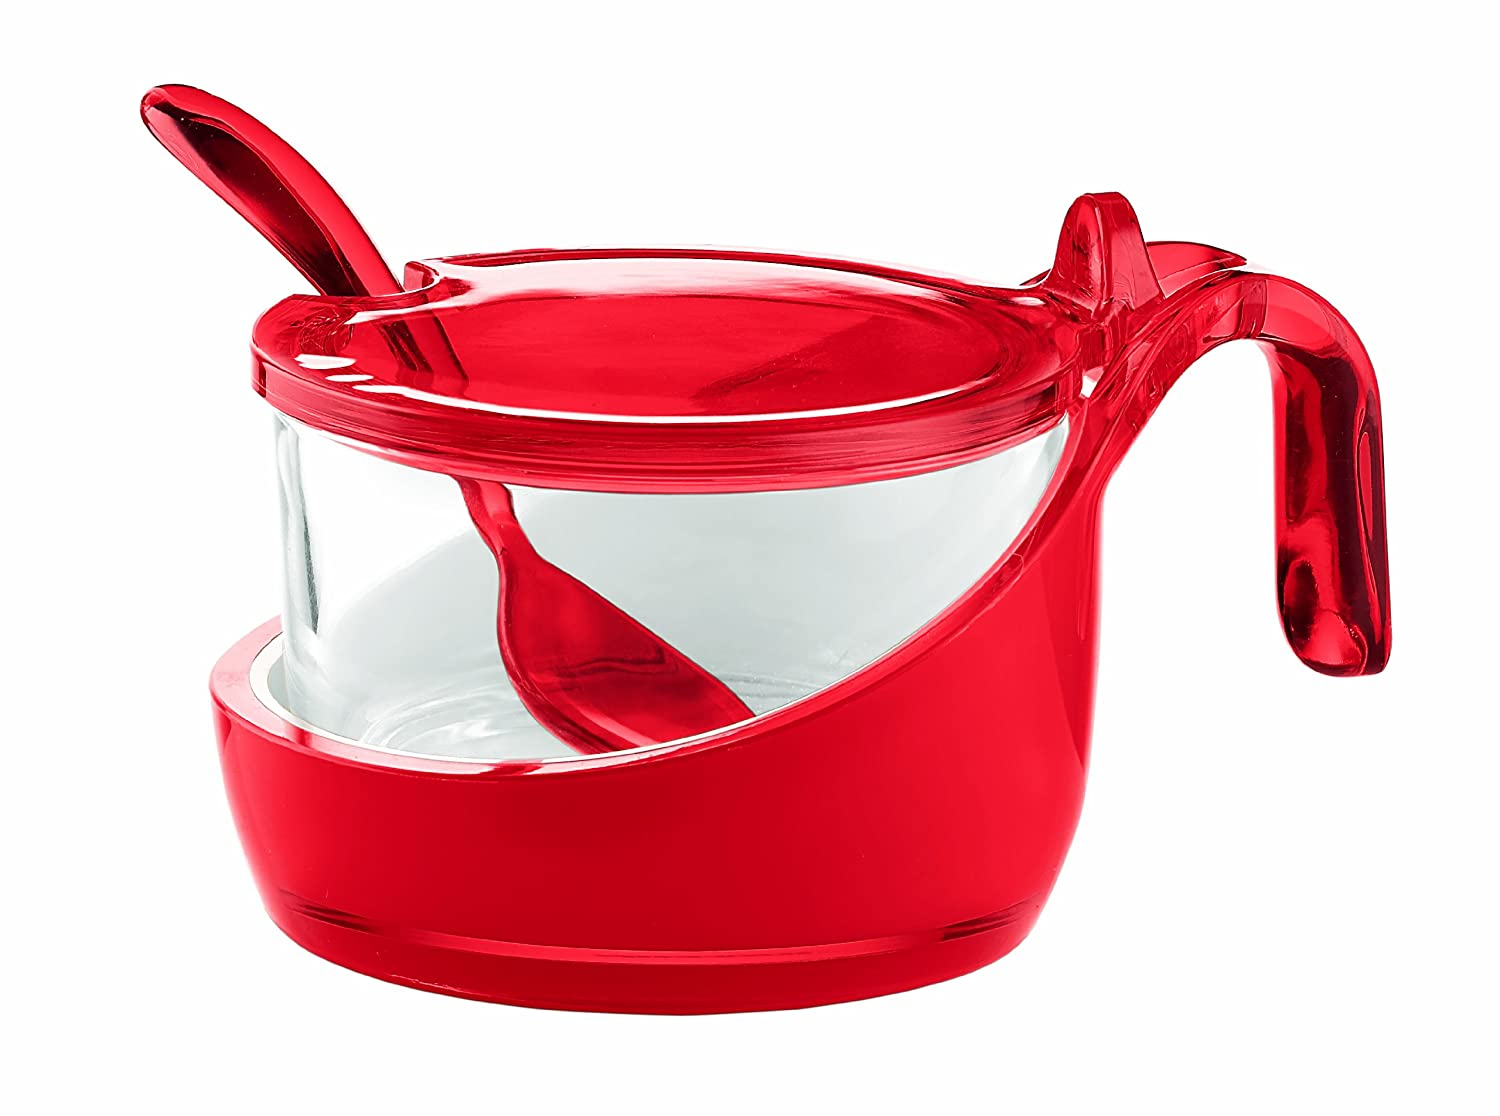 Guzzini Transparent Red Vintage Parmesan Server/Sugar Bowl with Teaspoon MAJESTIC GIFTS INC. GU-2489.00-65